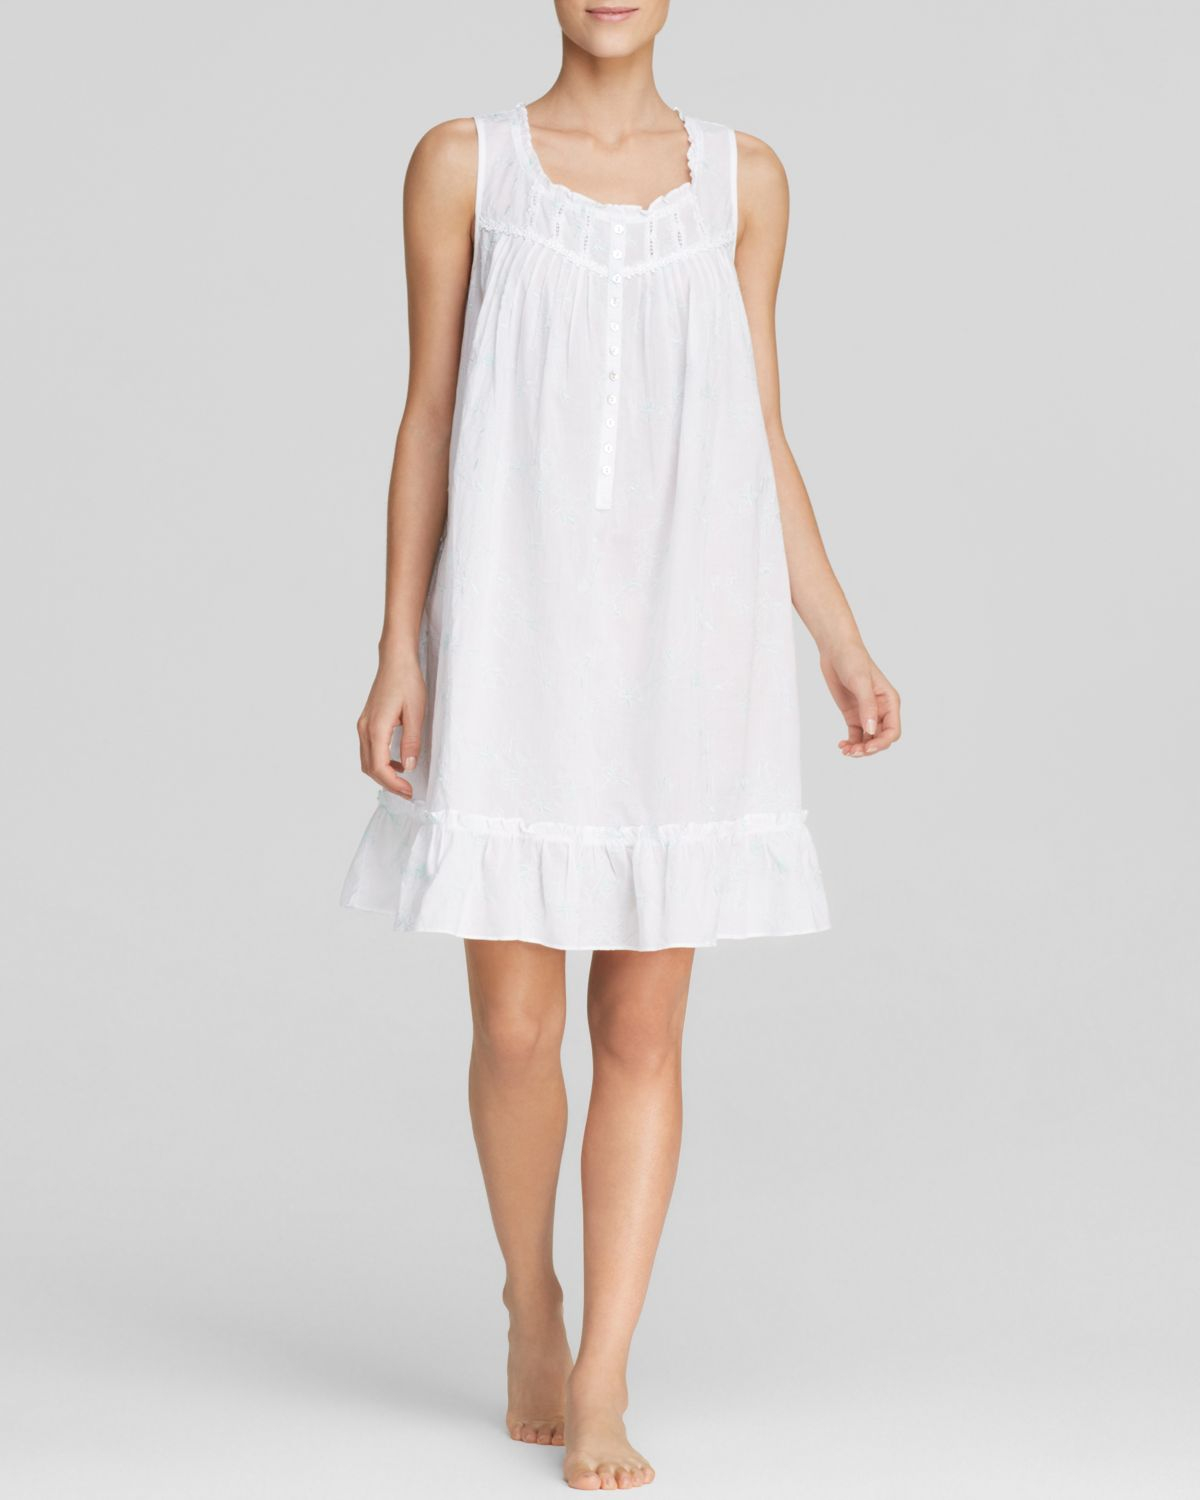 Lyst - Eileen West Lily Of The Valley Cotton Lawn Short Nightgown in ...